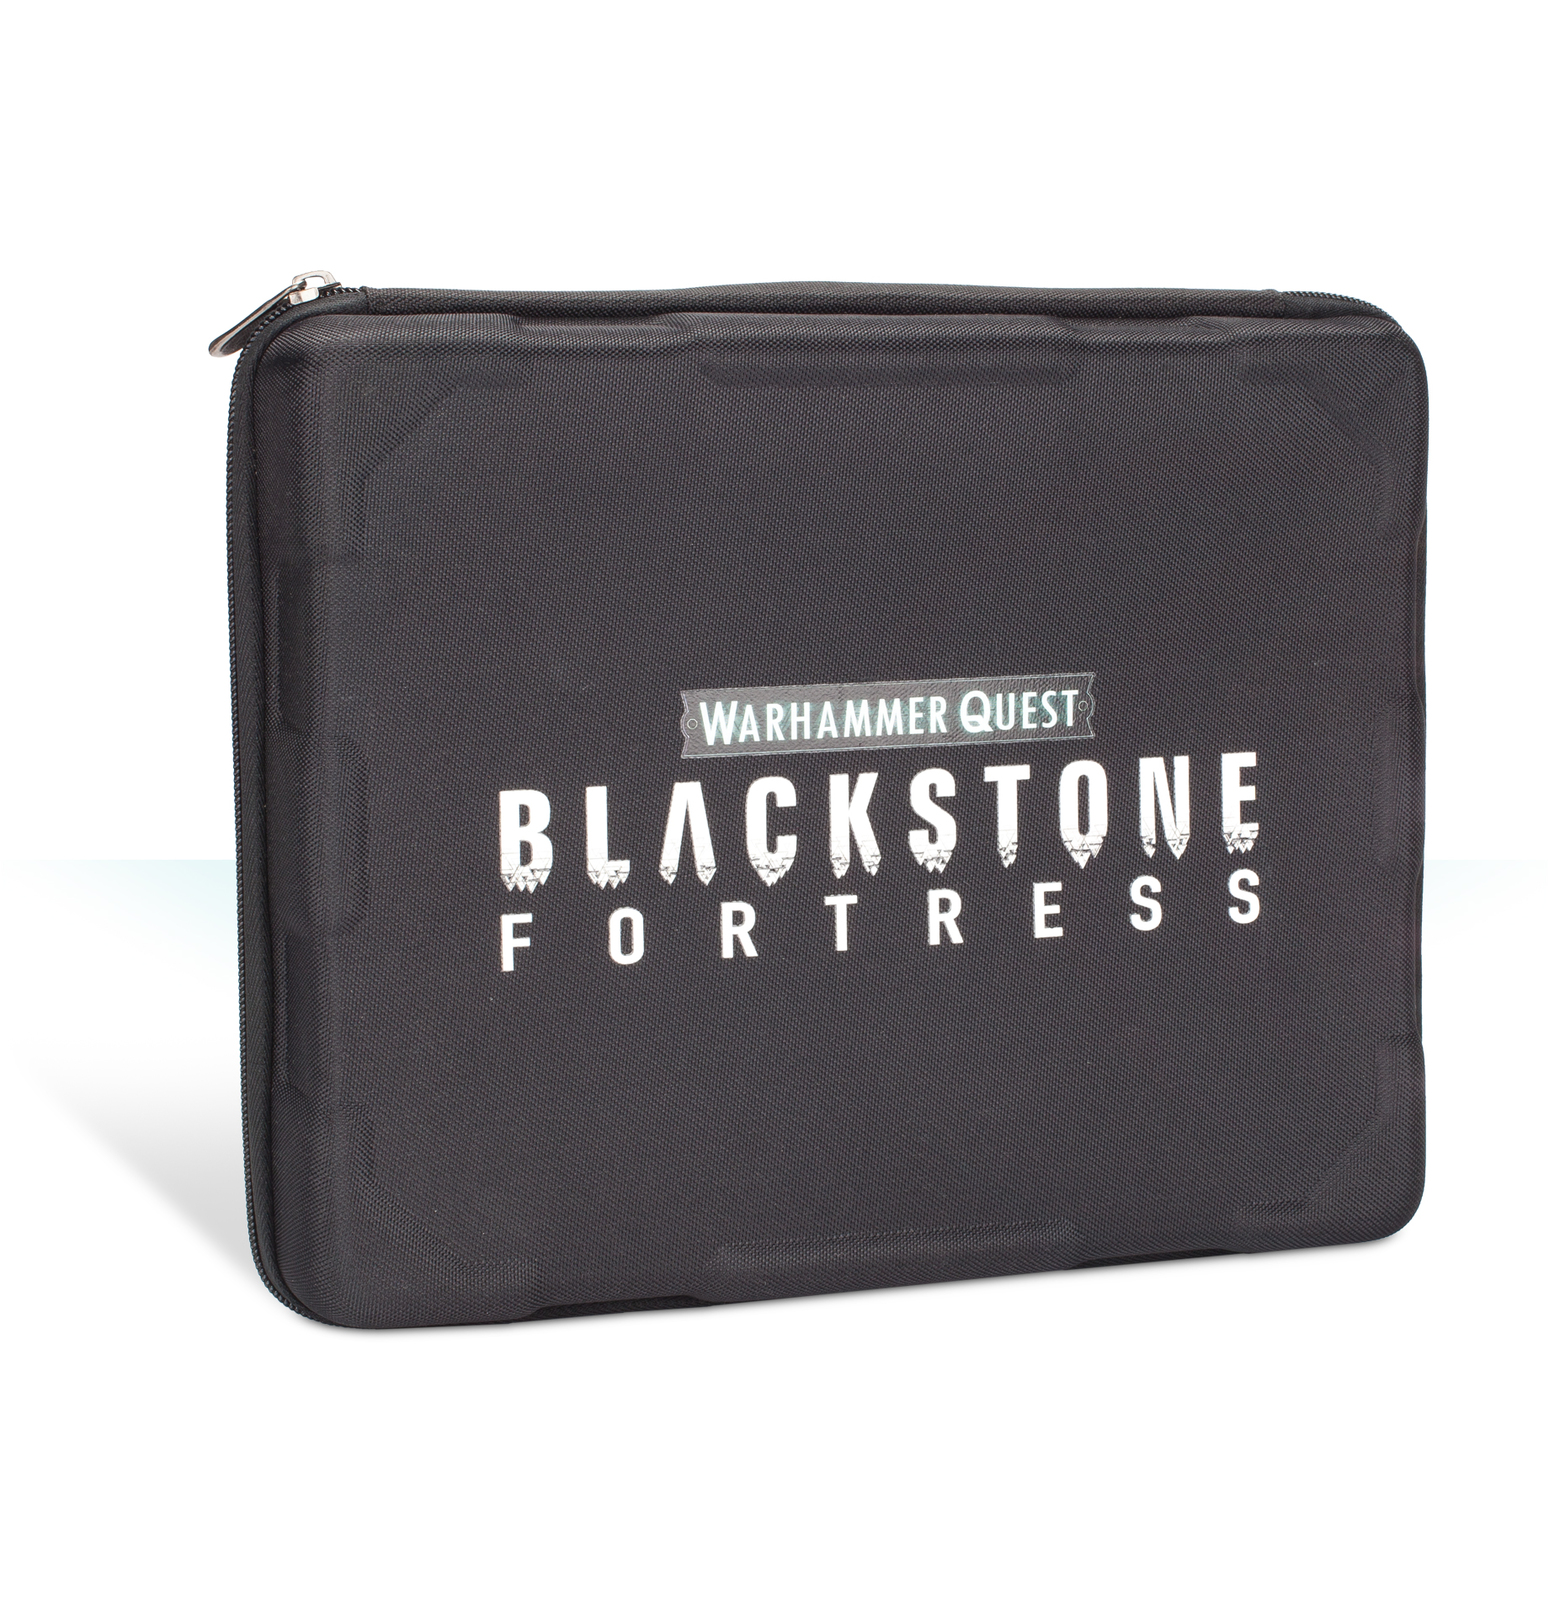 Warhammer Quest: Blackstone Fortress - Carry Case image